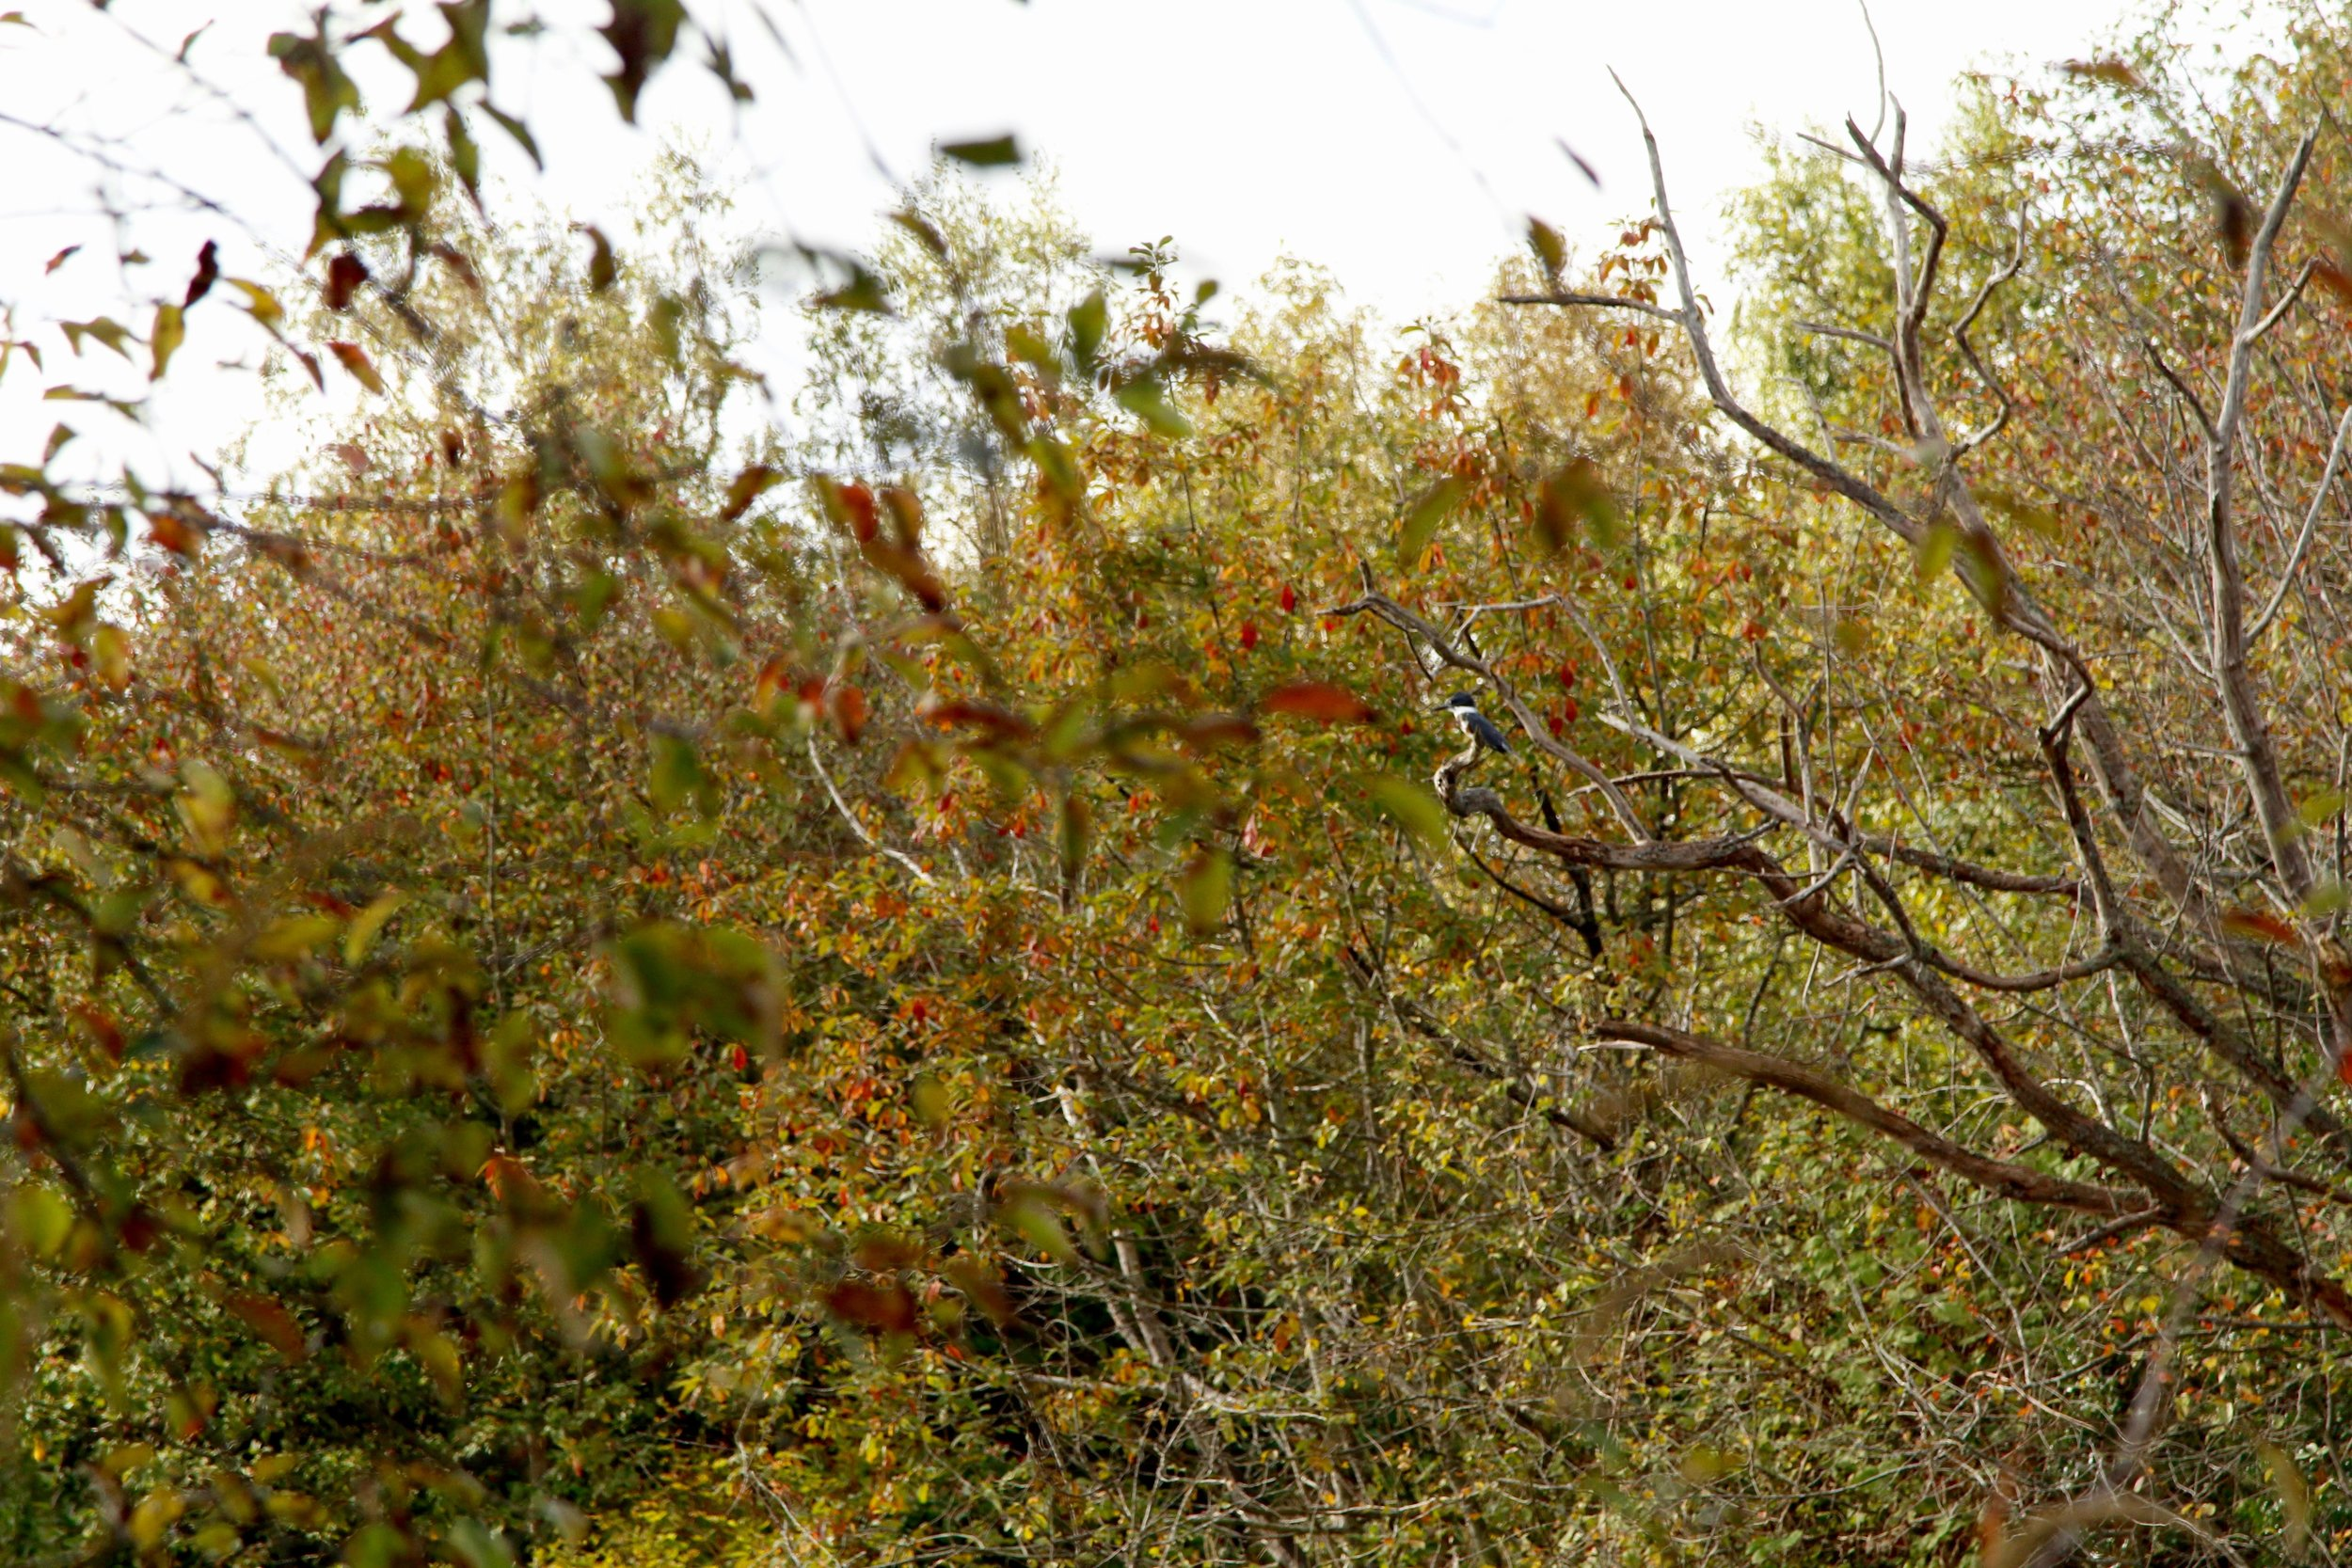 Somewhere in here is a Belted Kingfisher. He's small. Can you see him?